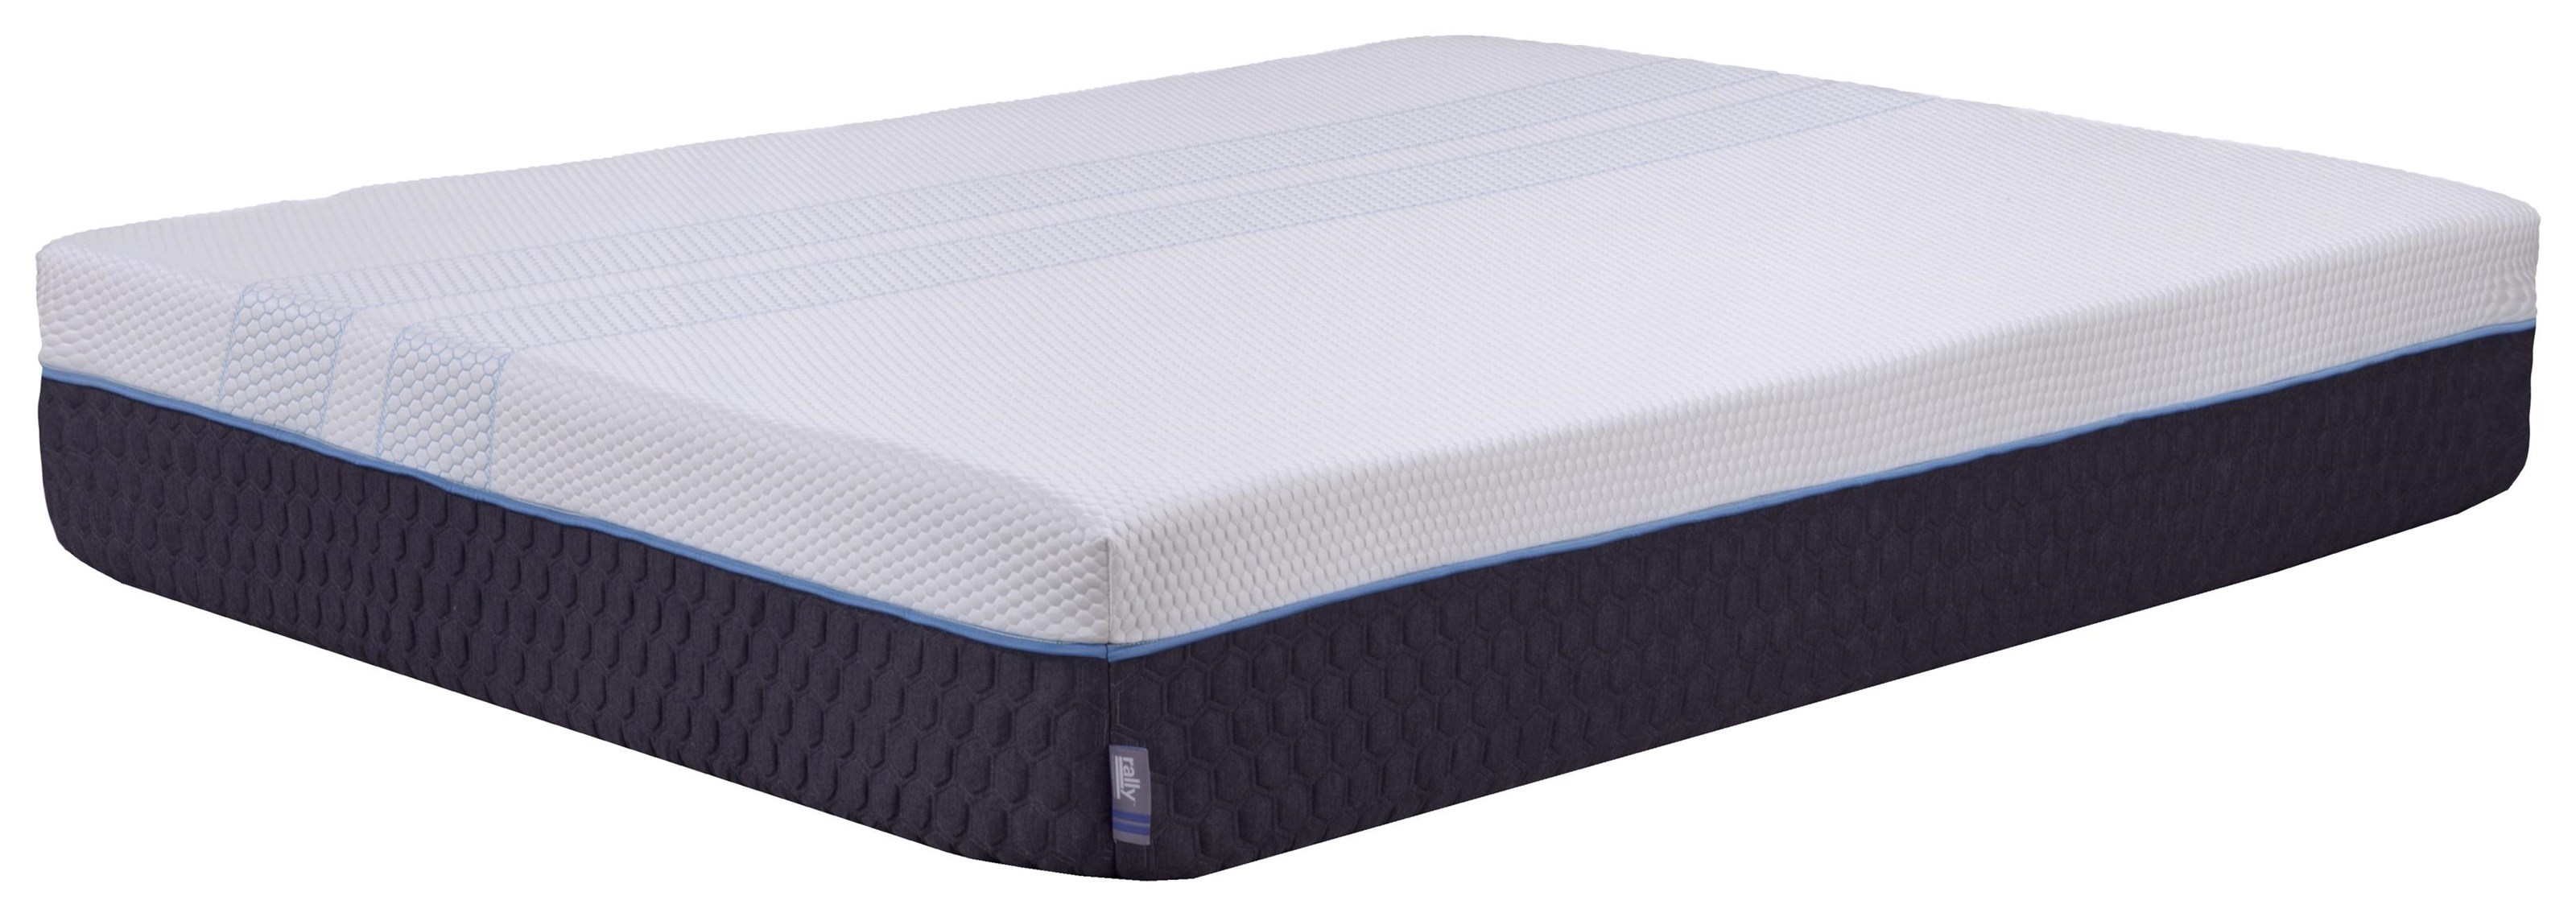 Rally Hybrid Cooling Plush Full Hybrid Cooling Plush Mattress by Diamond Mattress at Beck's Furniture